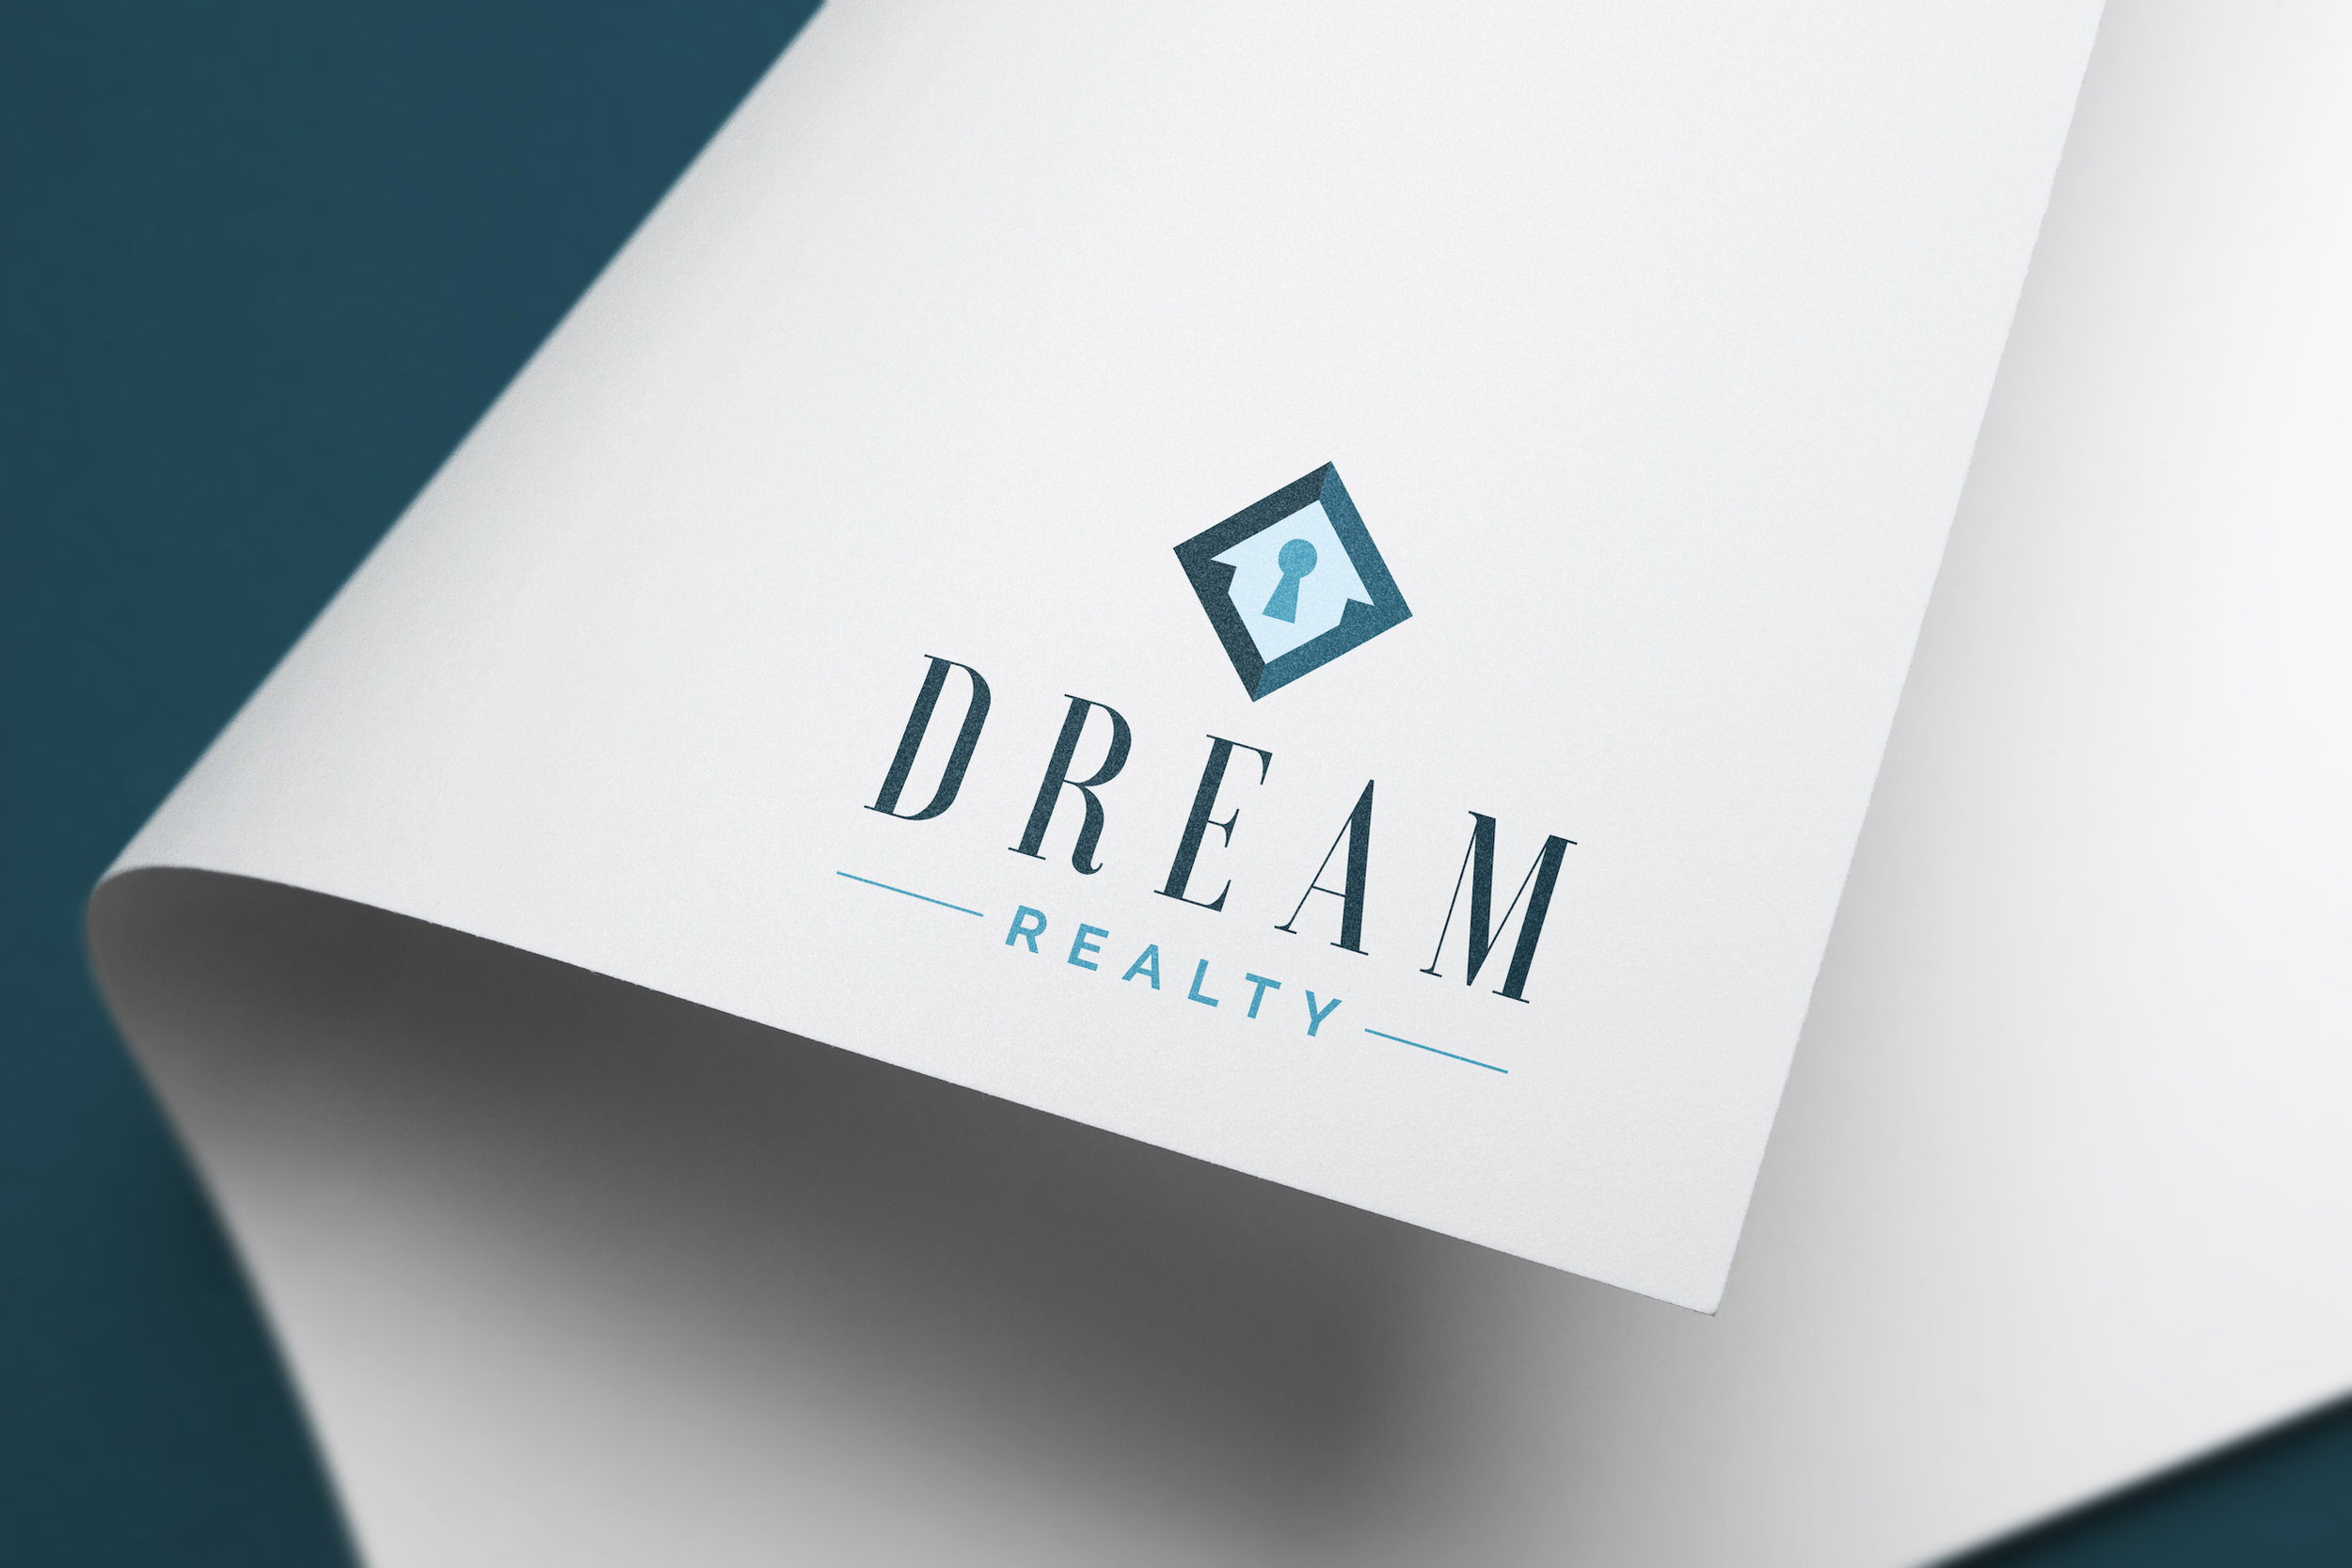 Golden-Antler-Design-Milwaukee-Web-Print-Branding-Graphic-Design-Creative-Services-Dream-Realty